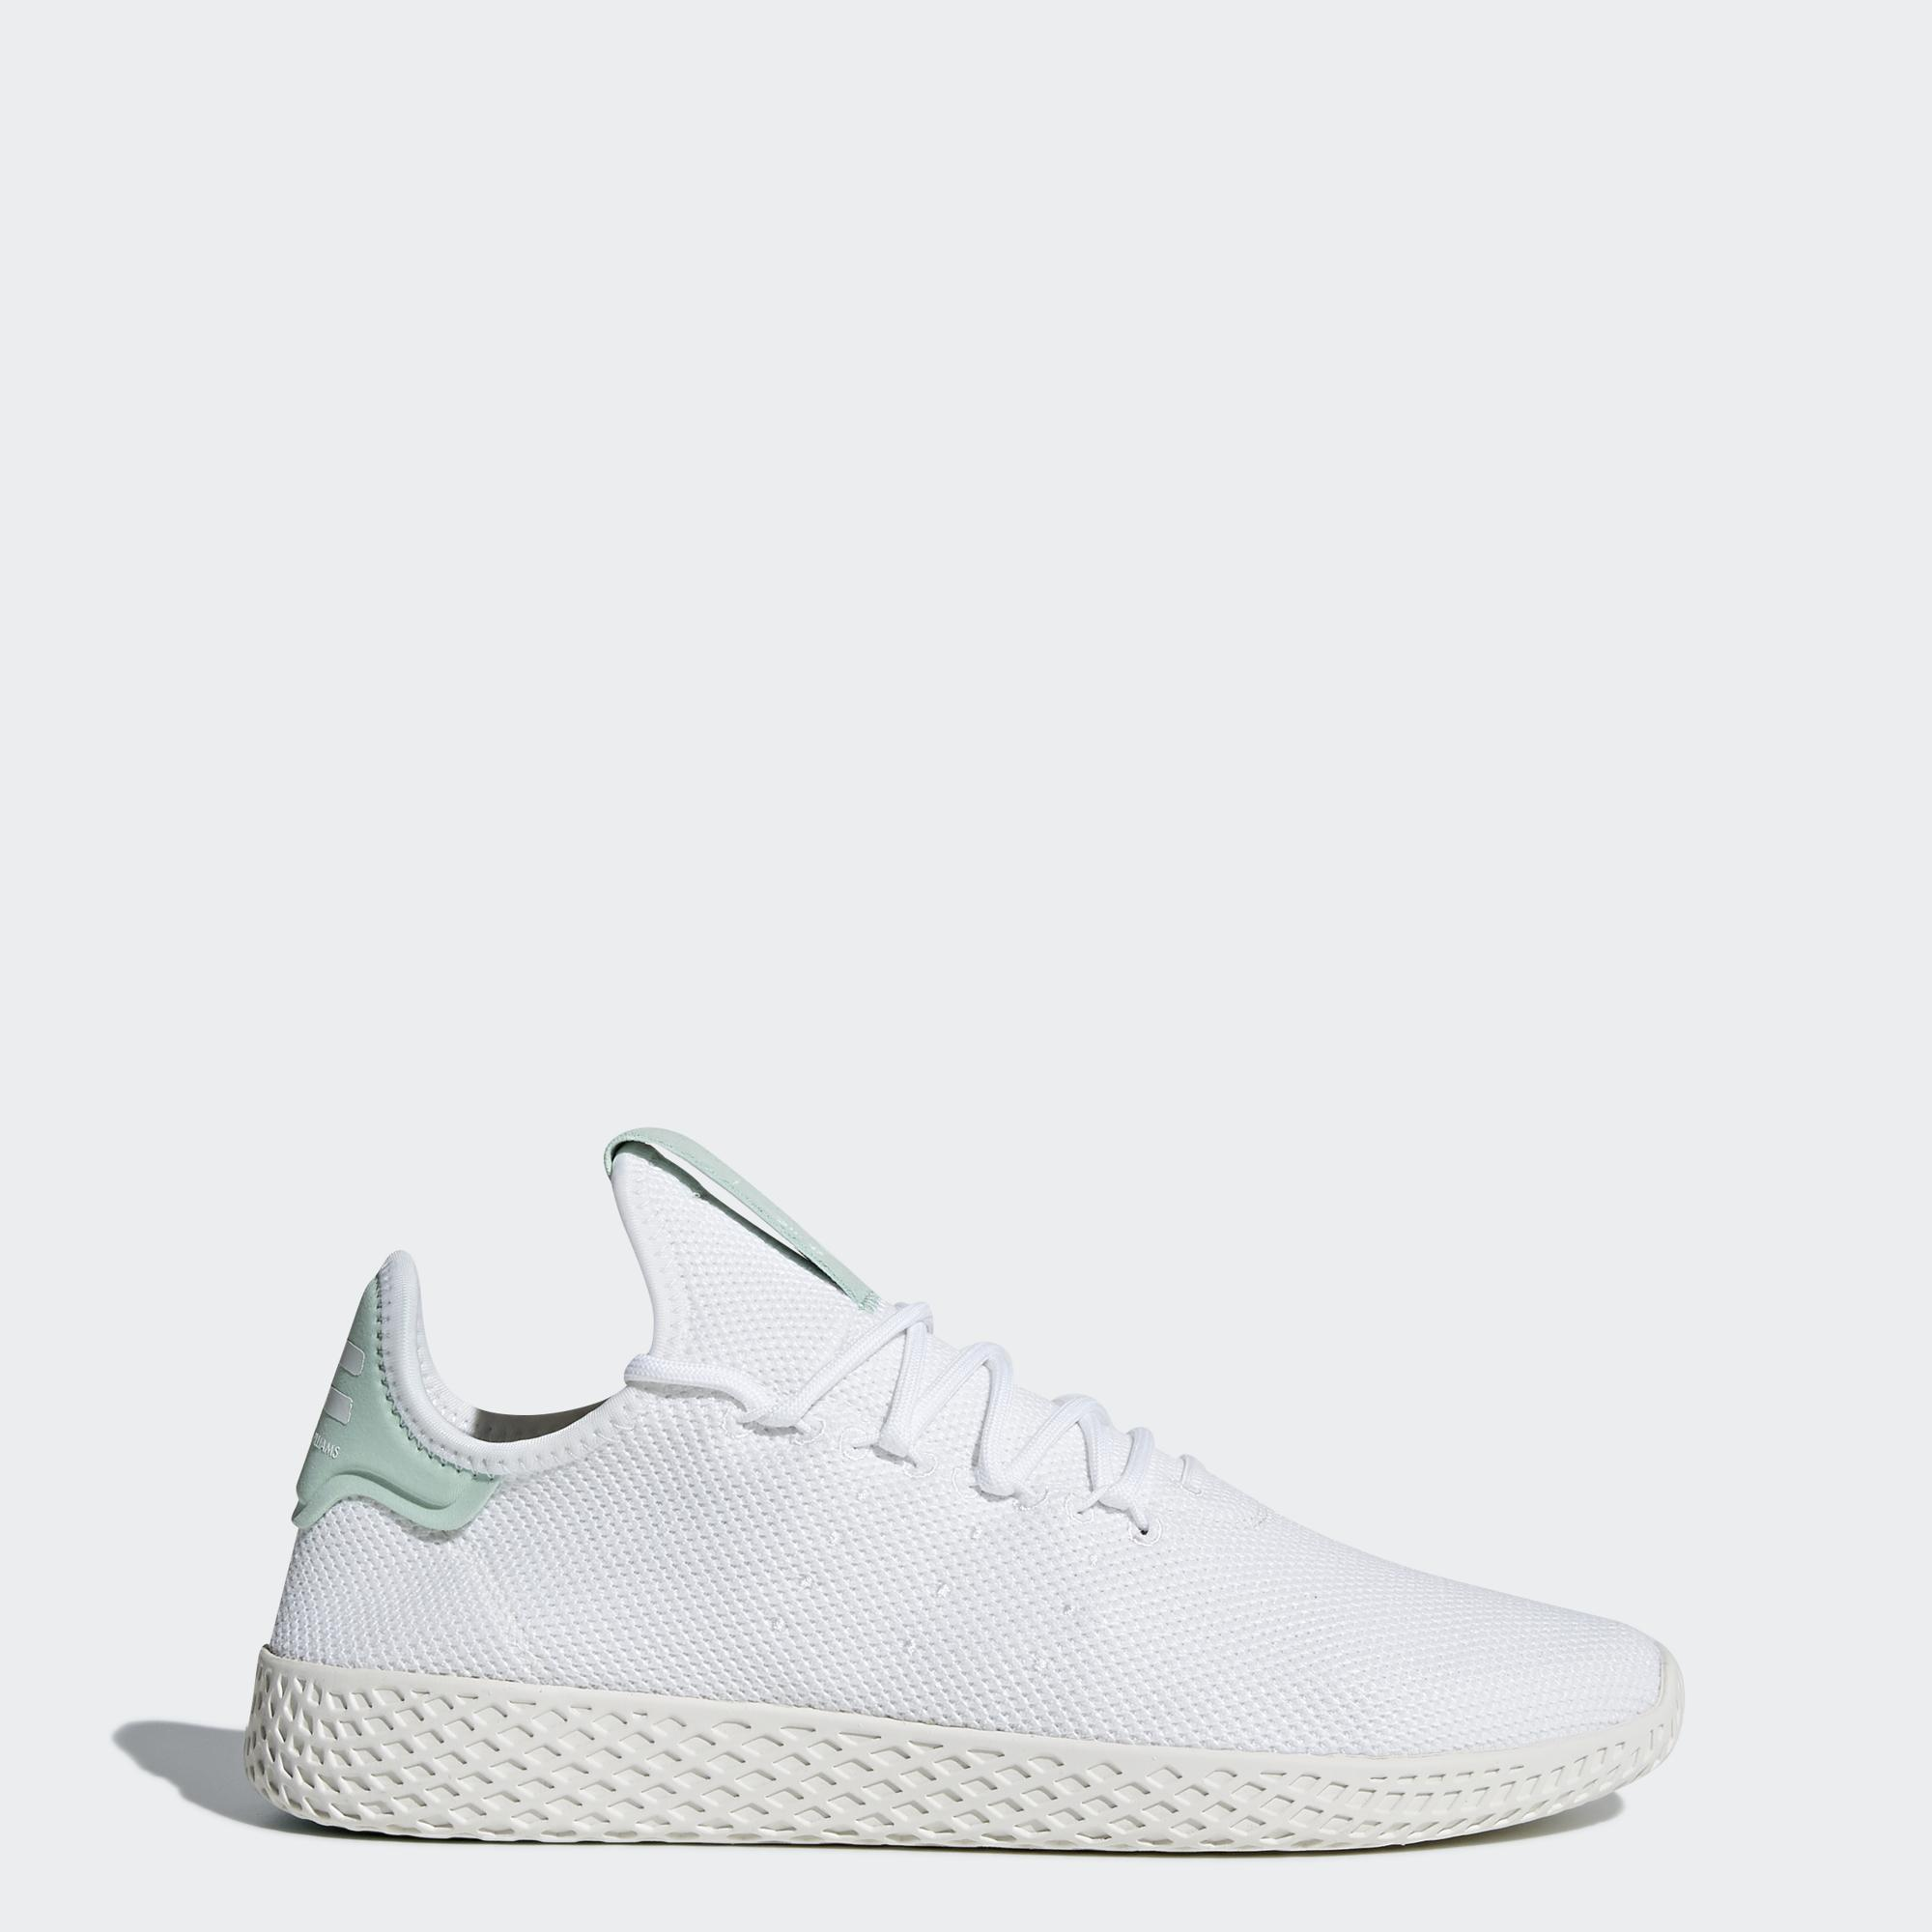 Adidas Originals Schuhe Pw Tennis Hu